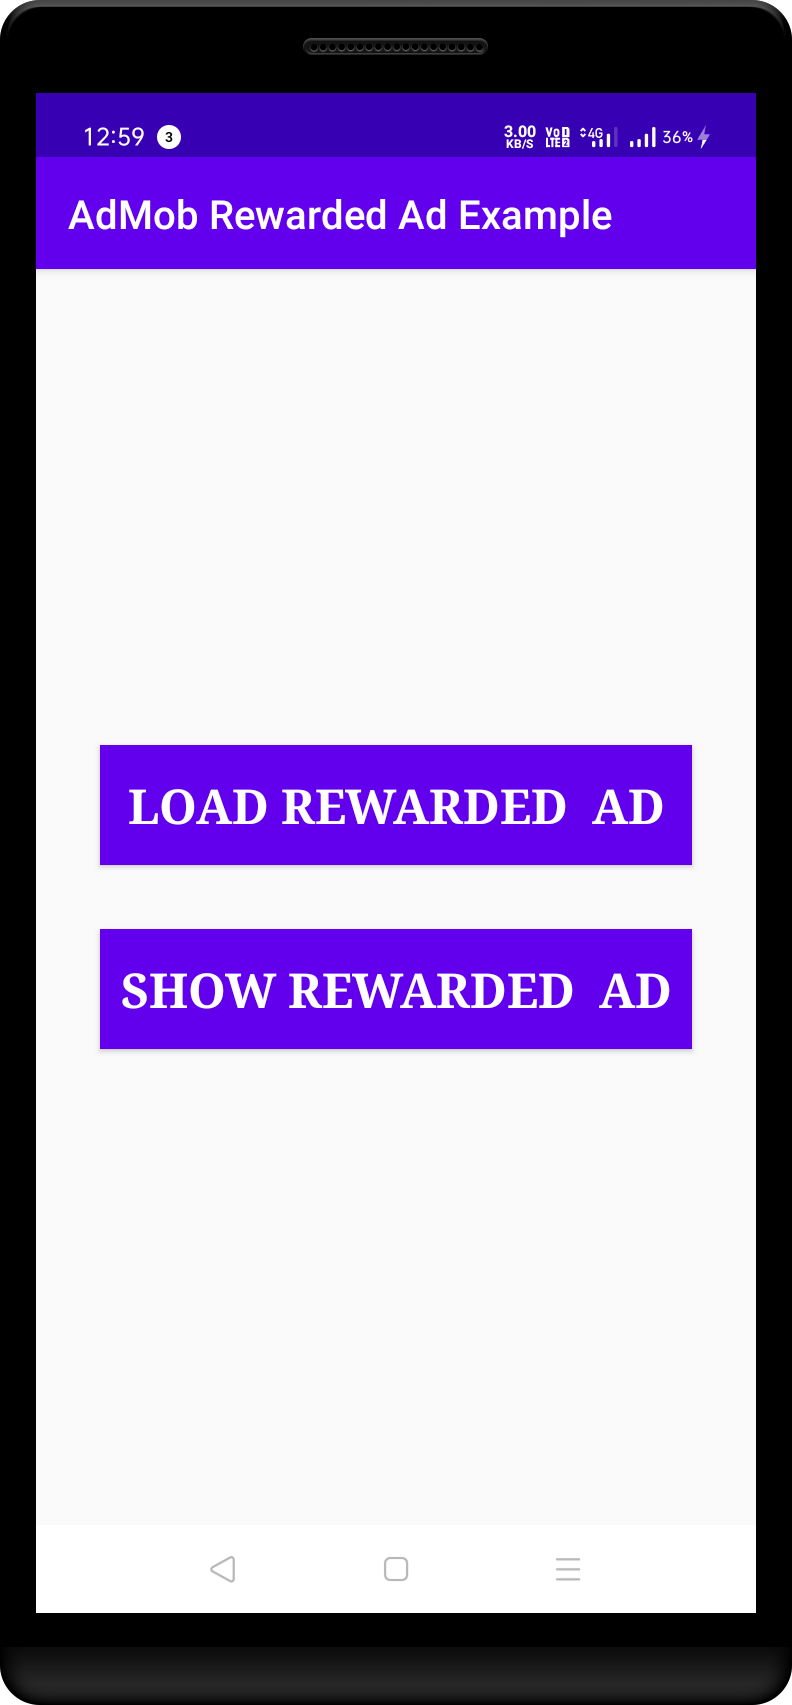 Admob Rewarded Video Ad Example